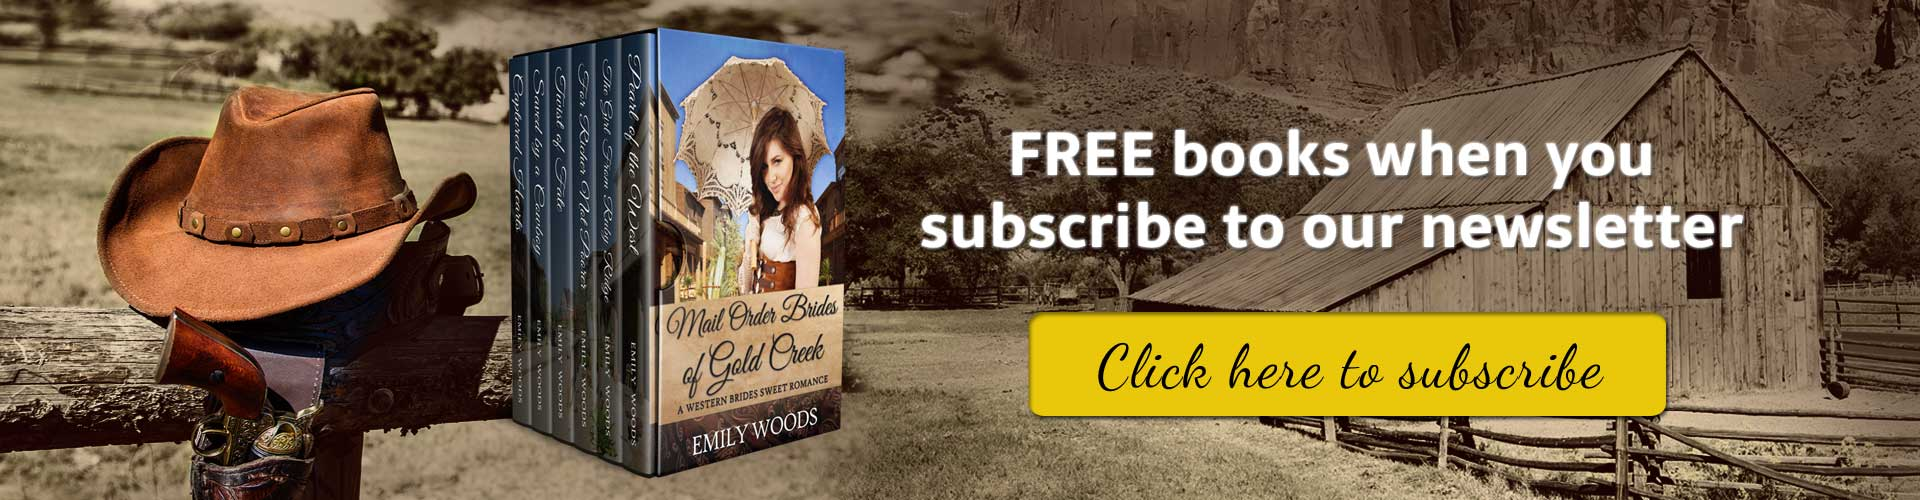 Free romance books when you subscribe to our newsletter